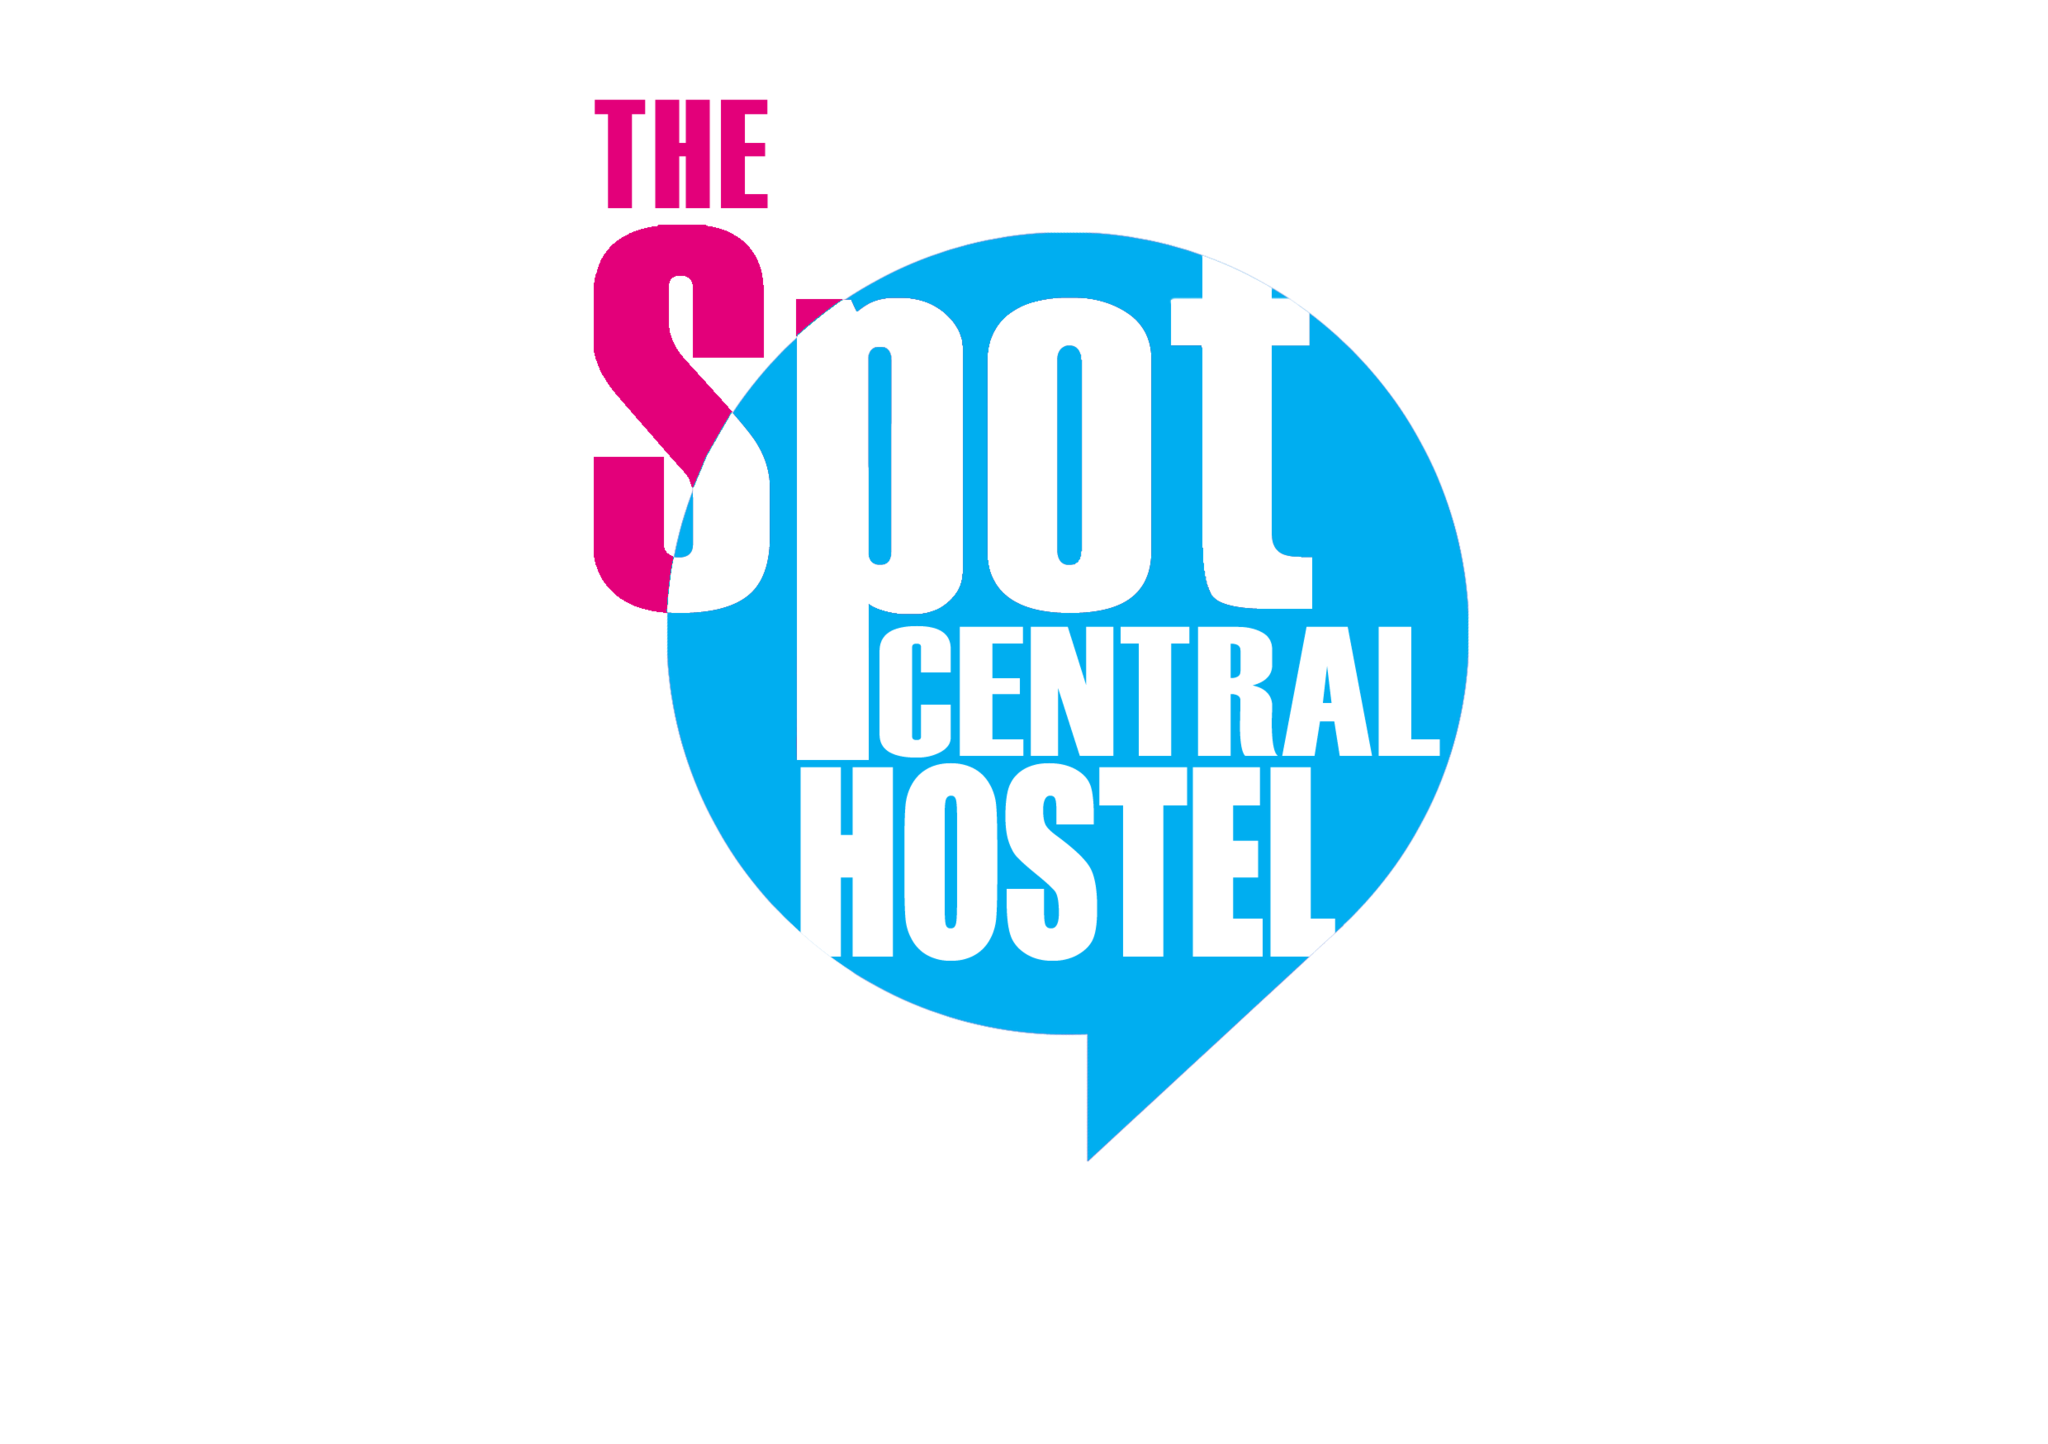 The Spot Central Hostel